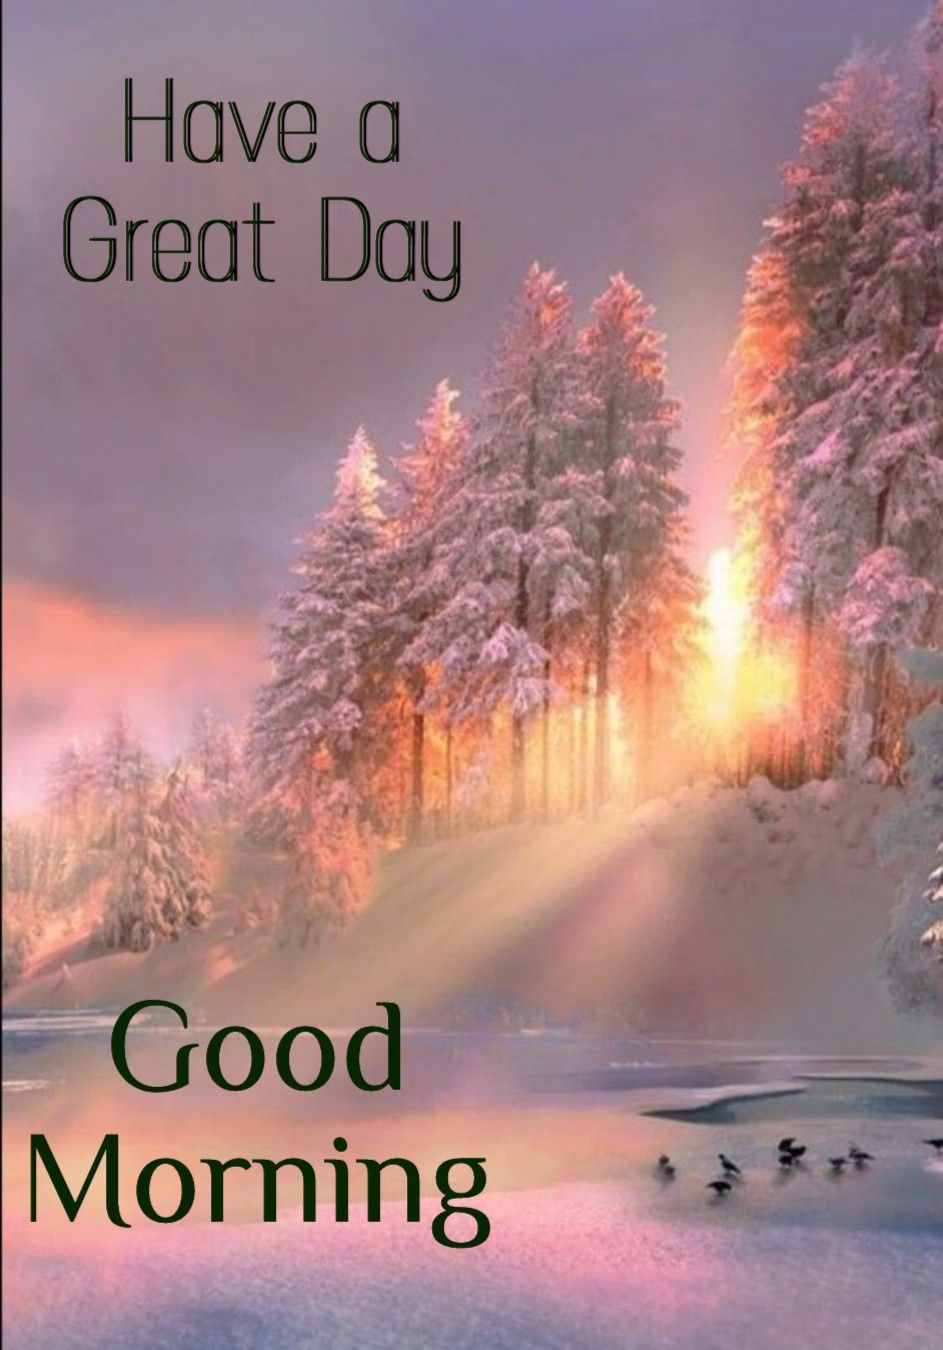 Pin By Ironjfarm On Morning Wishes Good Morning Nature Good Morning Friends Images Good Morning Winter Images